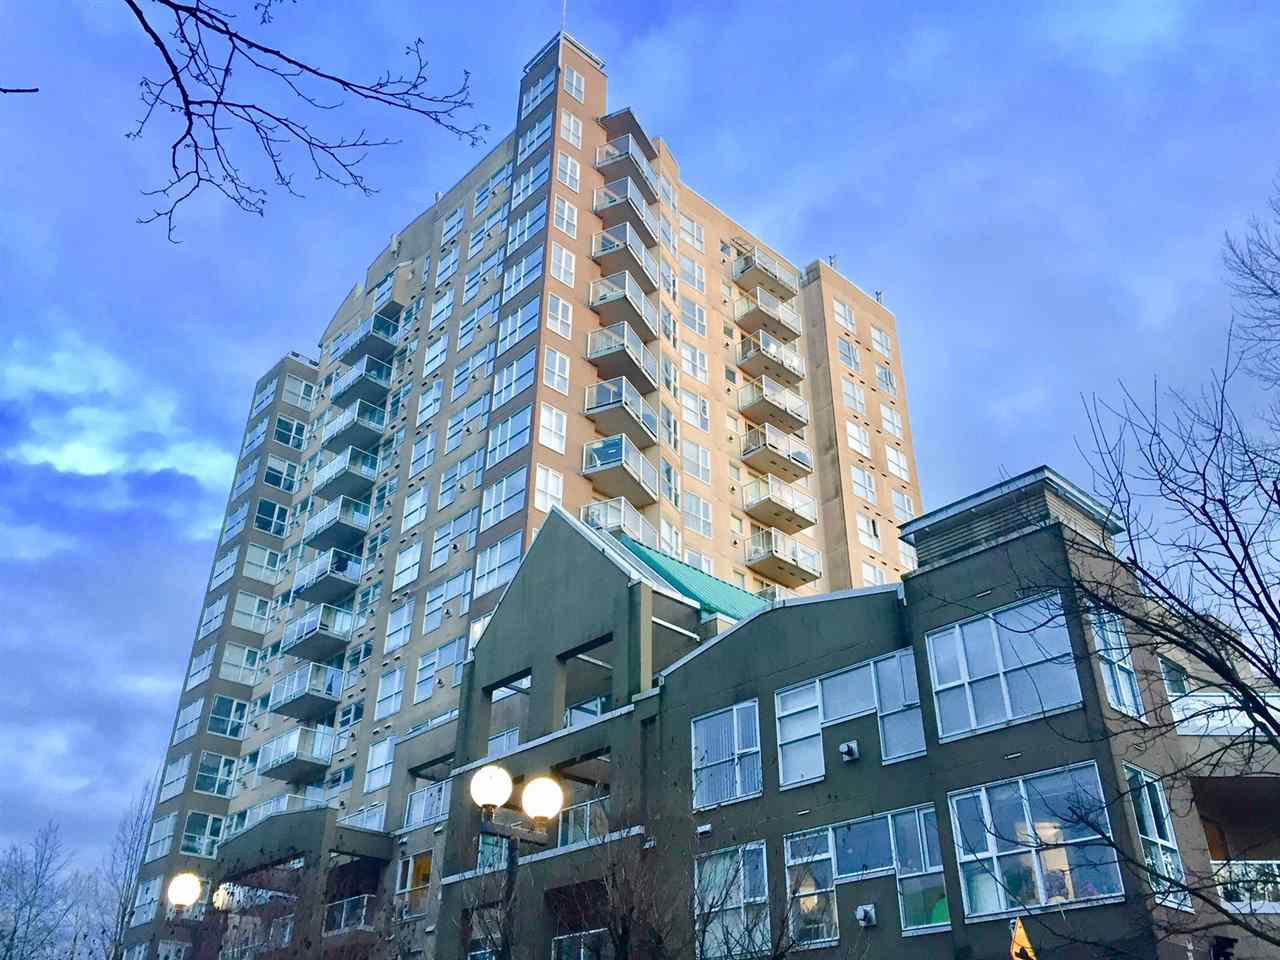 """Main Photo: 1007 9830 WHALLEY Boulevard in Surrey: Whalley Condo for sale in """"KING GEORGE PARK"""" (North Surrey)  : MLS®# R2237467"""